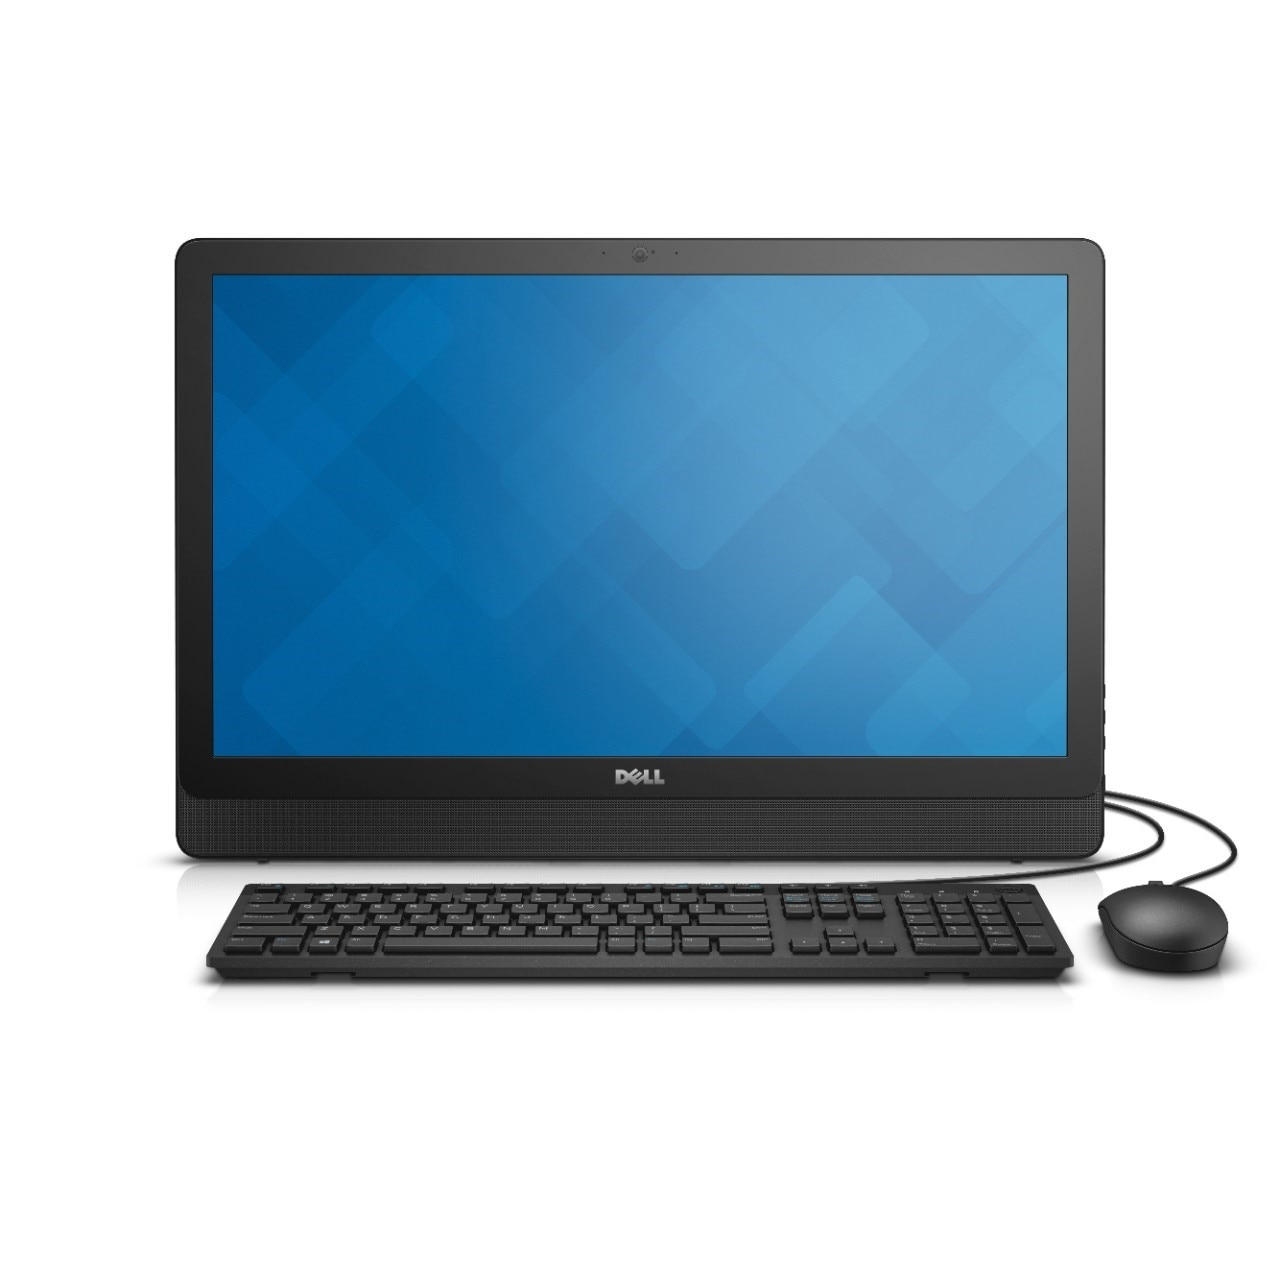 Inspiron 24 3000 (3464) All-in-One